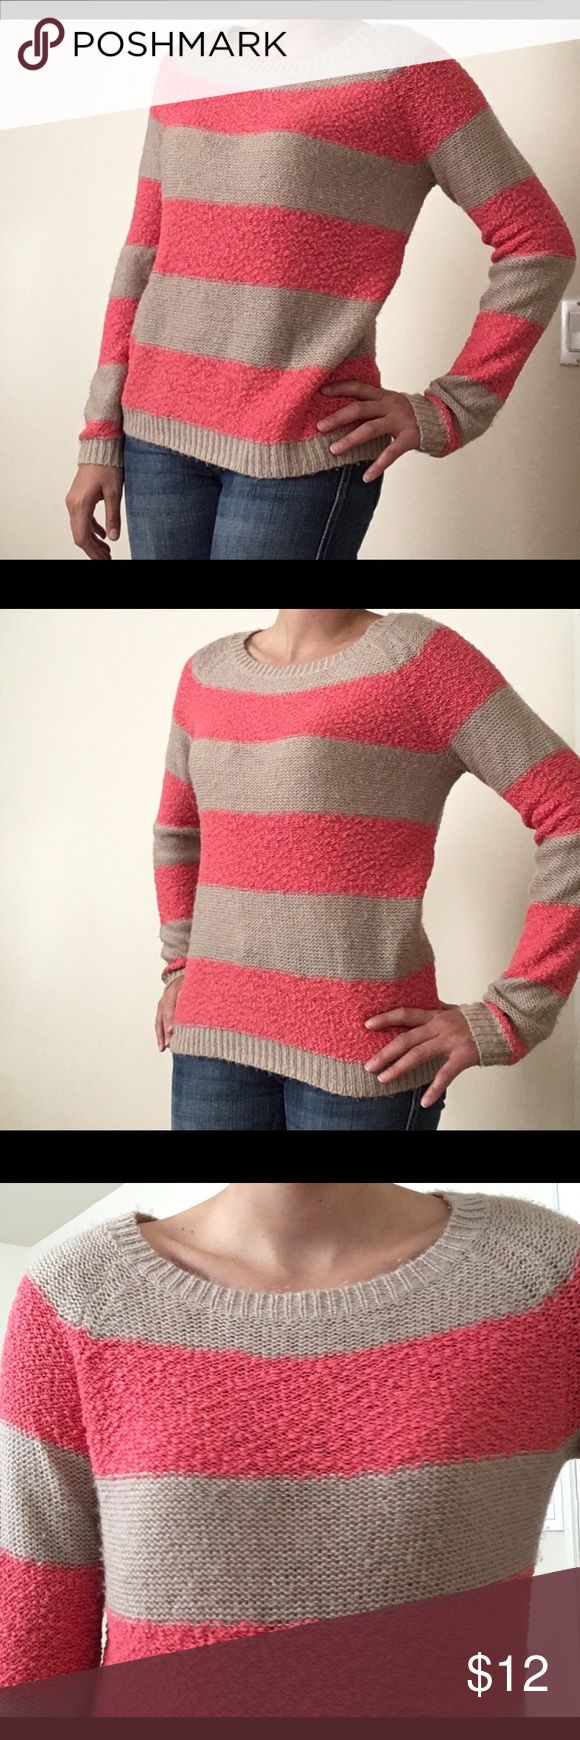 LC Lauren Conrad Sweater Size M LC Lauren Conrad Sweater size M I Gently Work, great condition I Coral and lift brown stripes I offers welcome! LC Lauren Conrad Sweaters